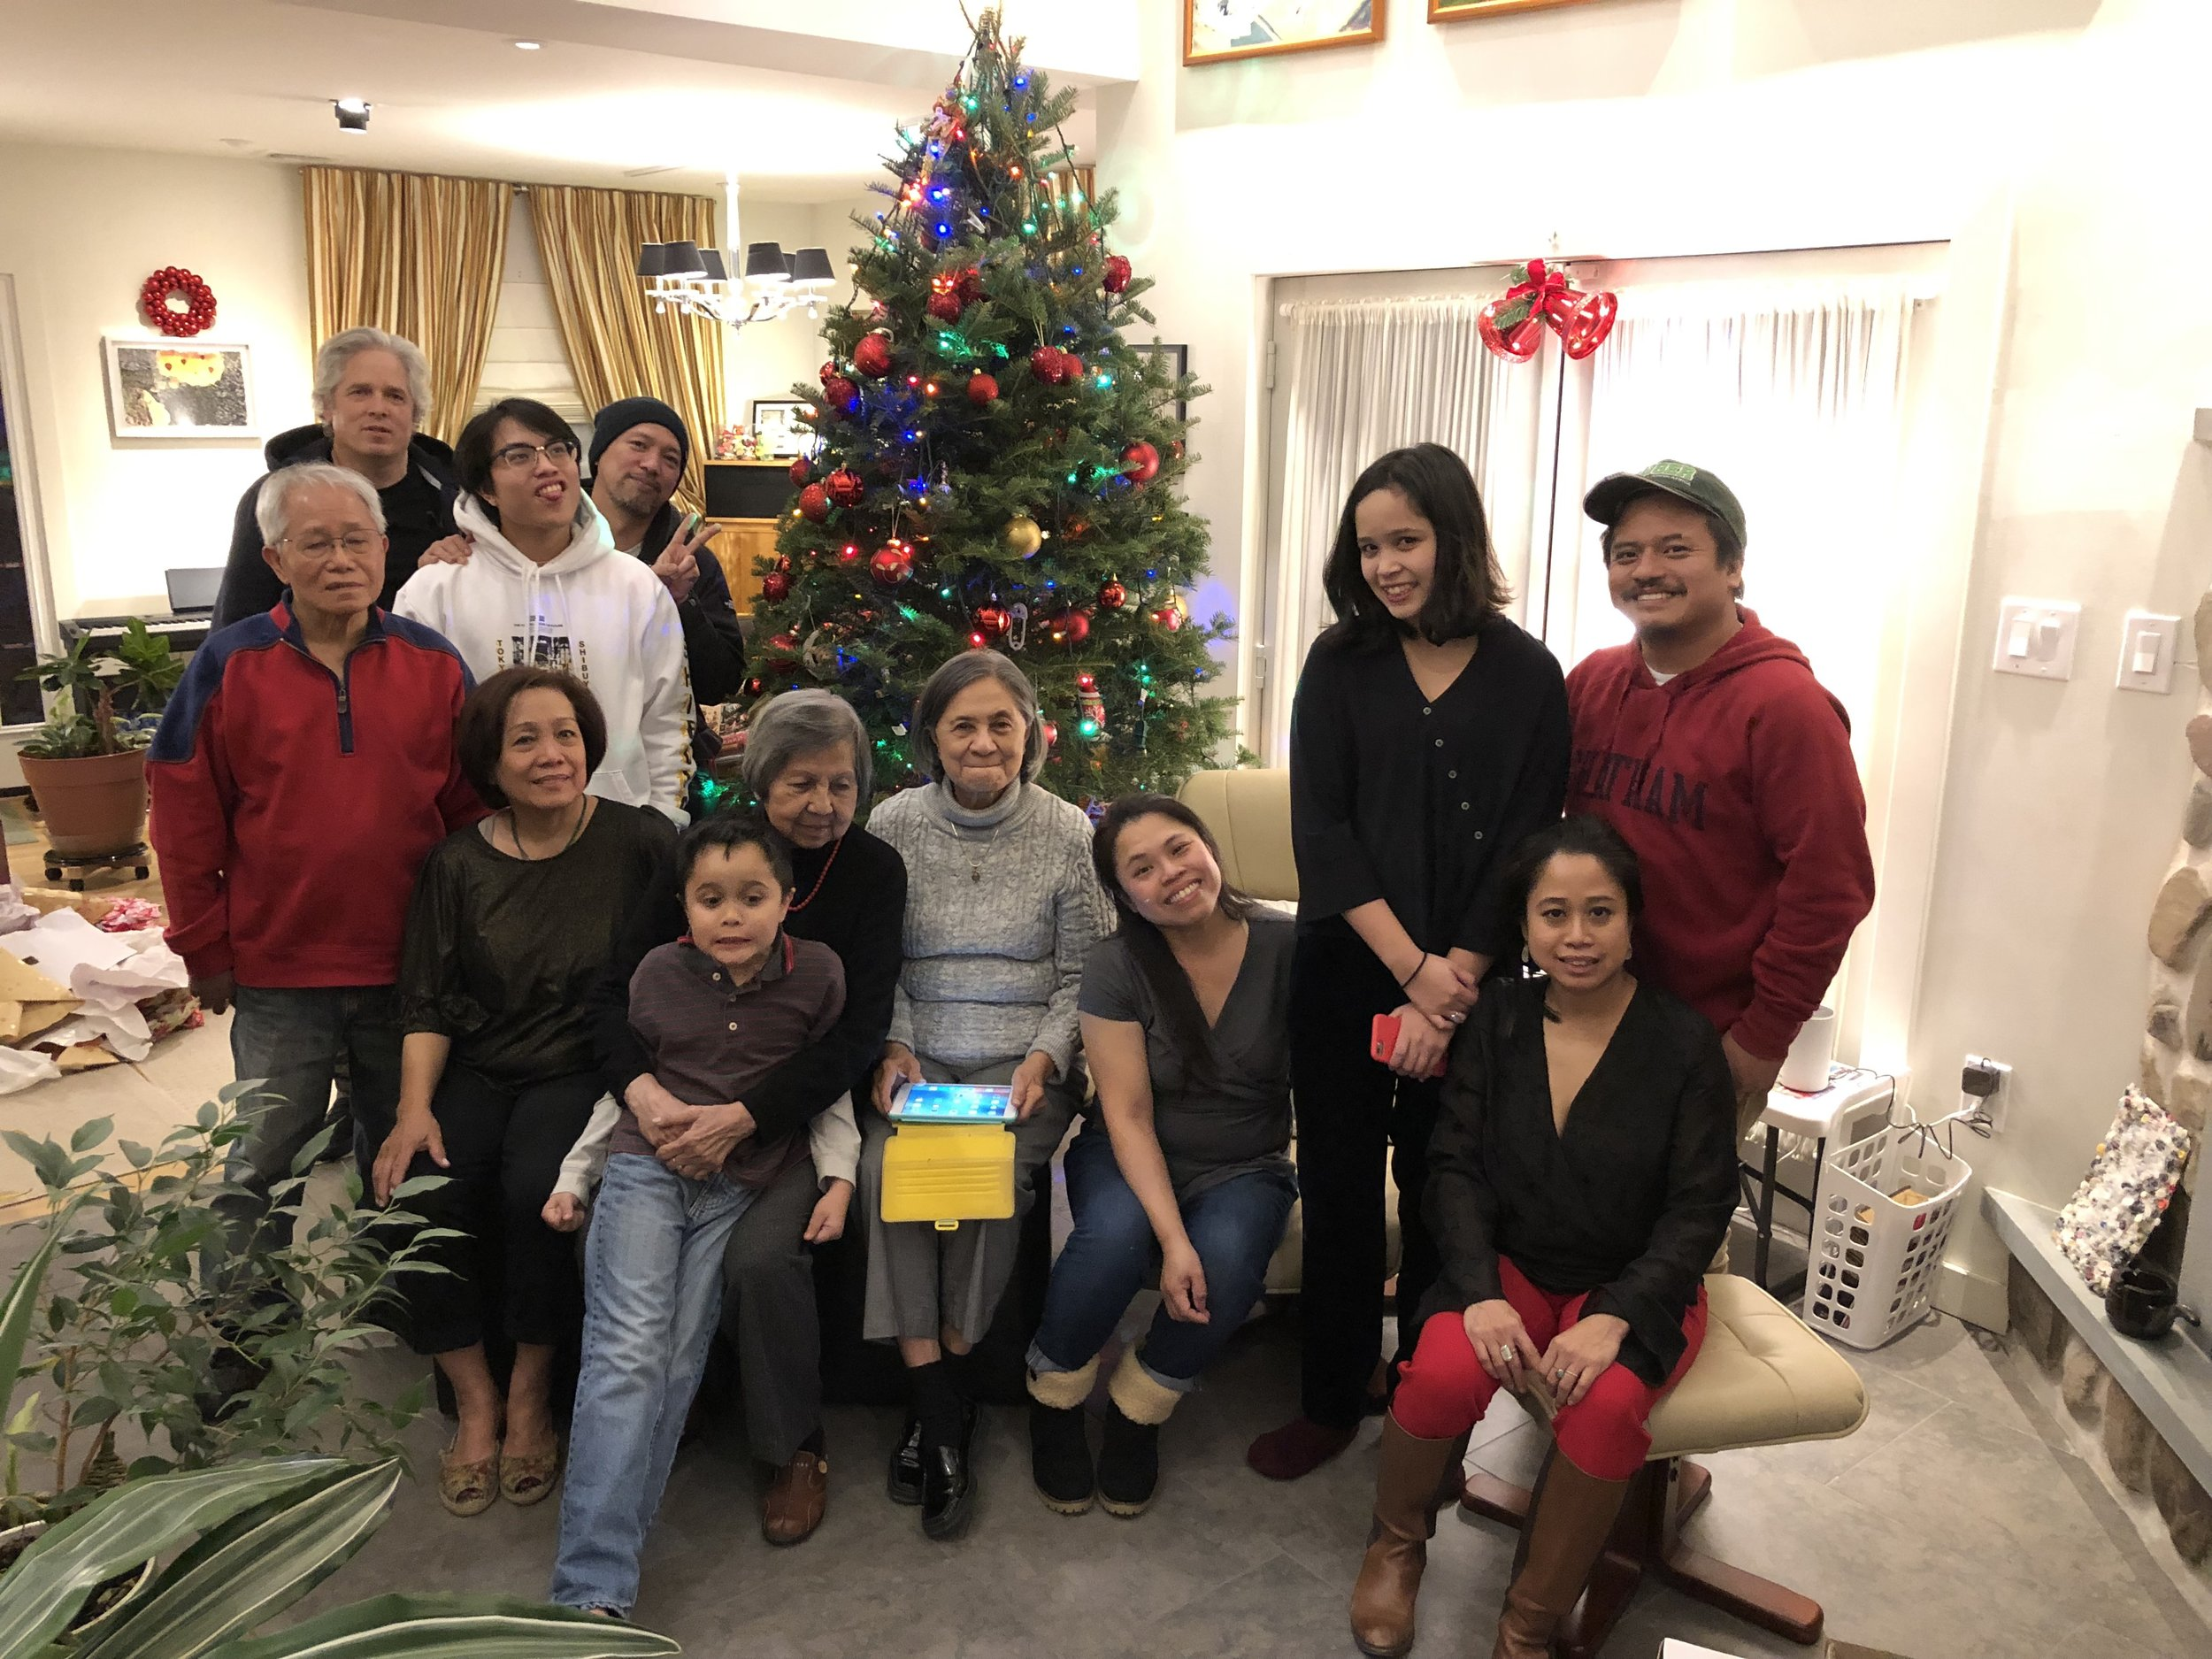 Celebrated our annual Christmas day dinner with the larger family.